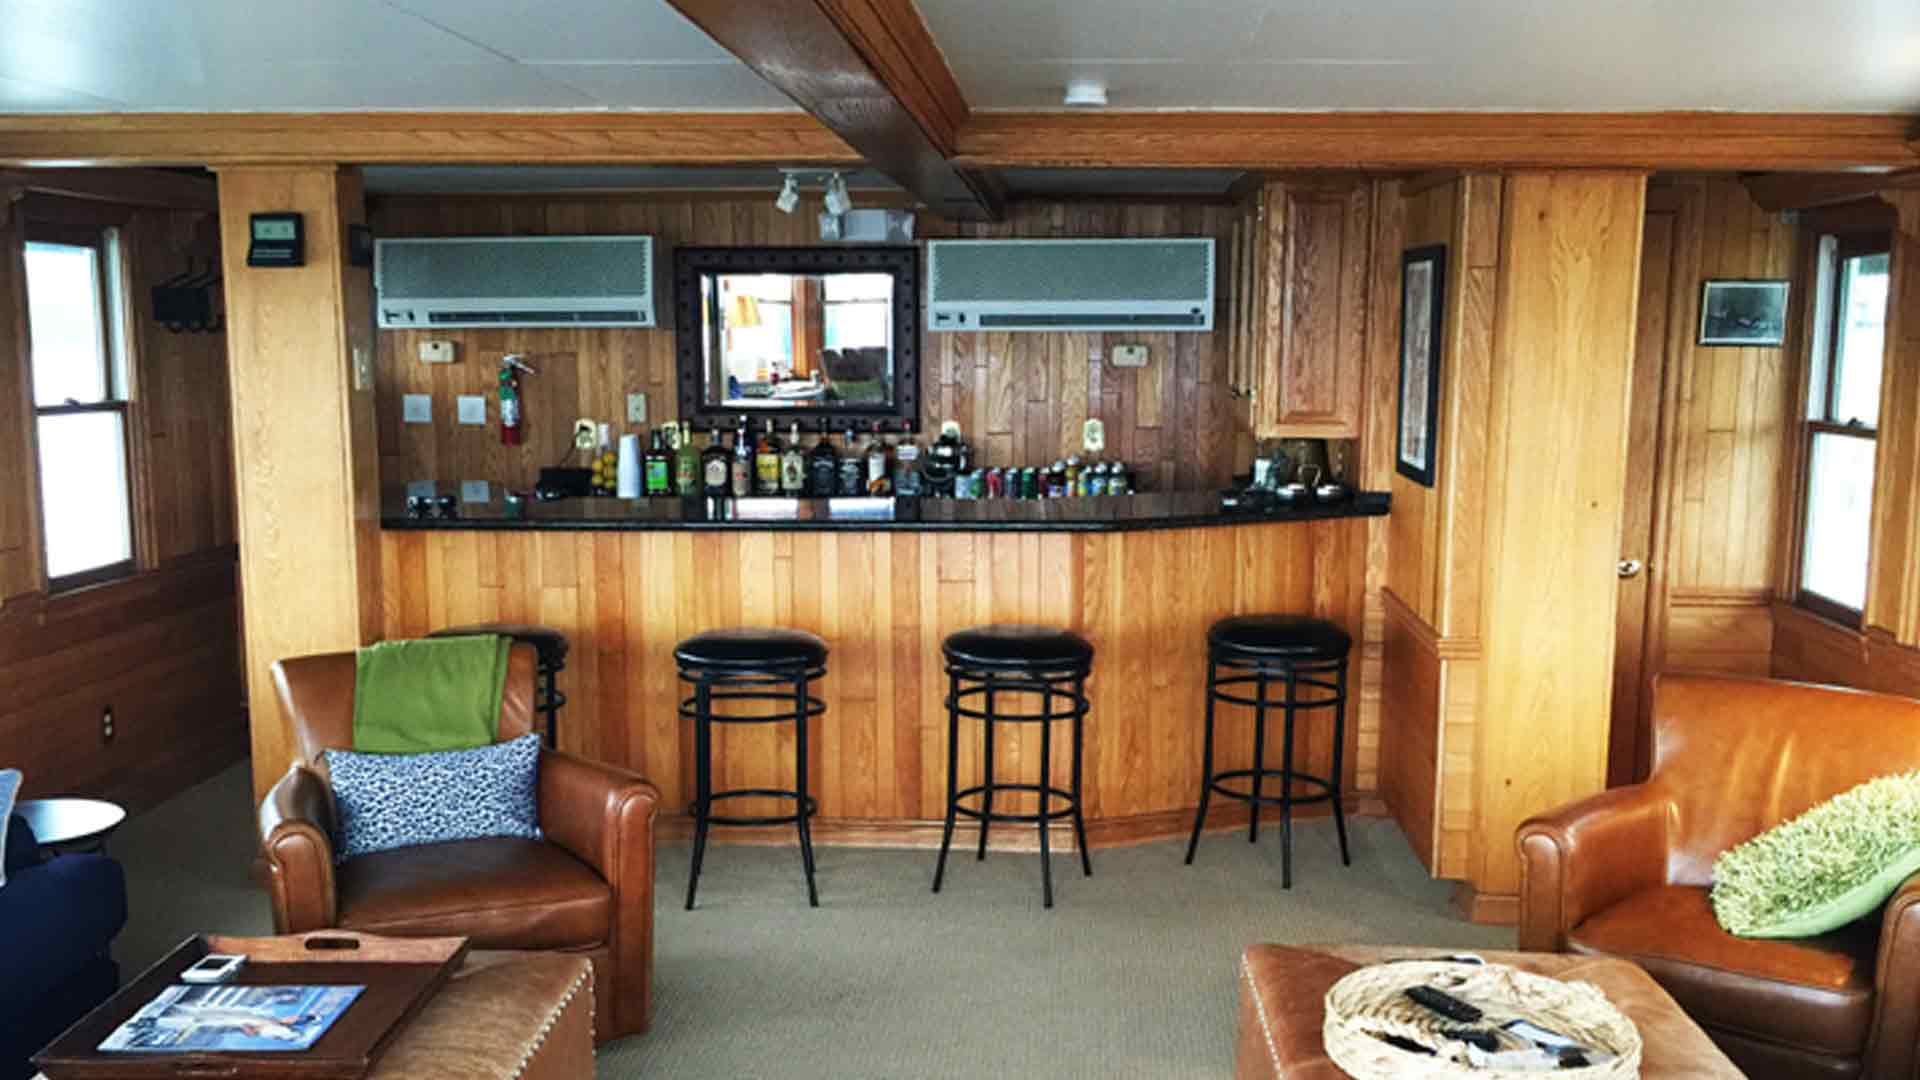 Self-Serve Bar in the Lounge